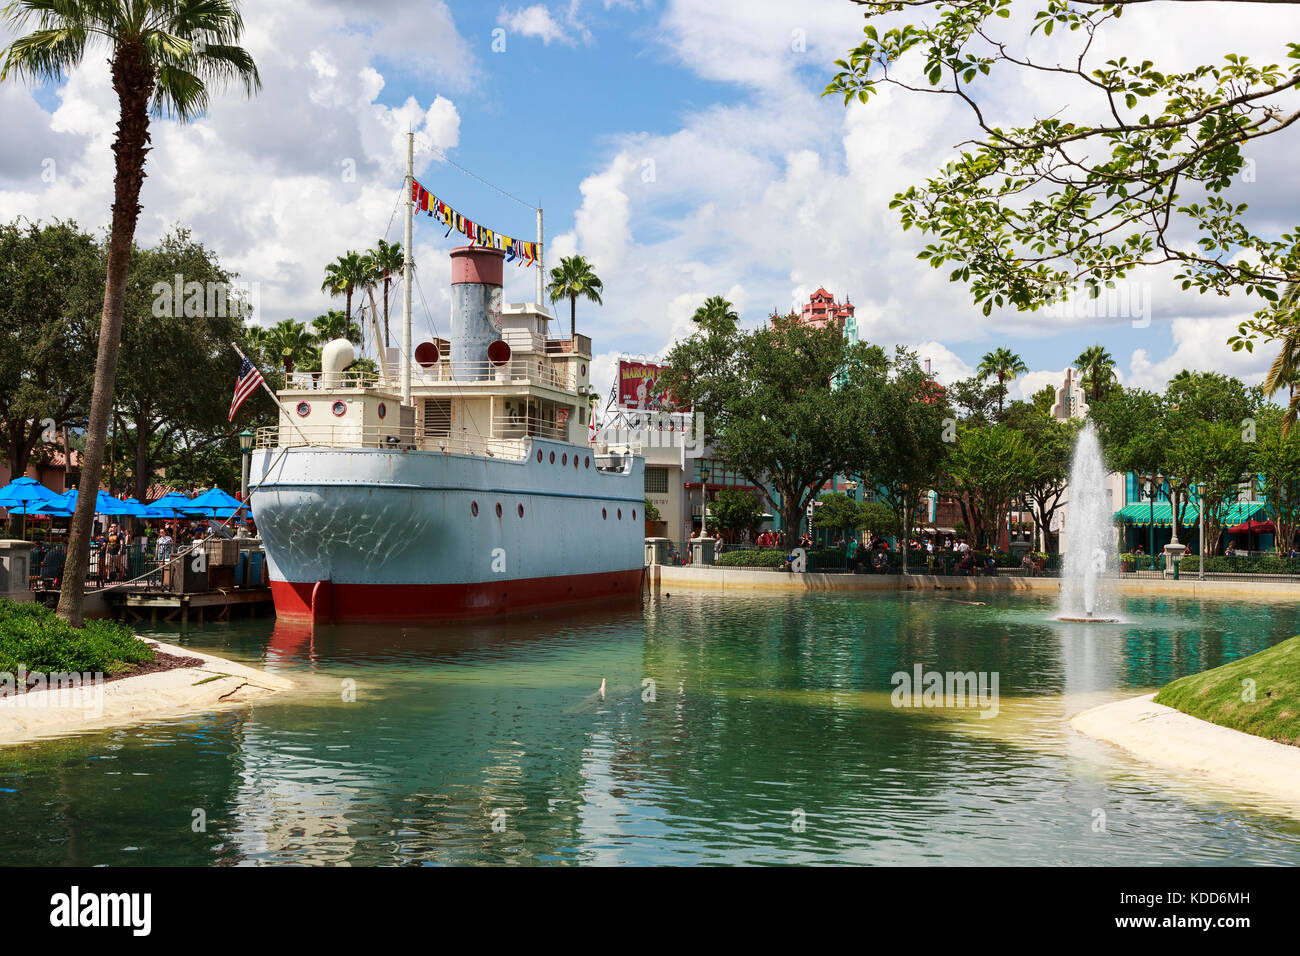 Down the Hatch ship used as a restaurant, Universal Studios, Orlando, Florida,  UK - Stock Image